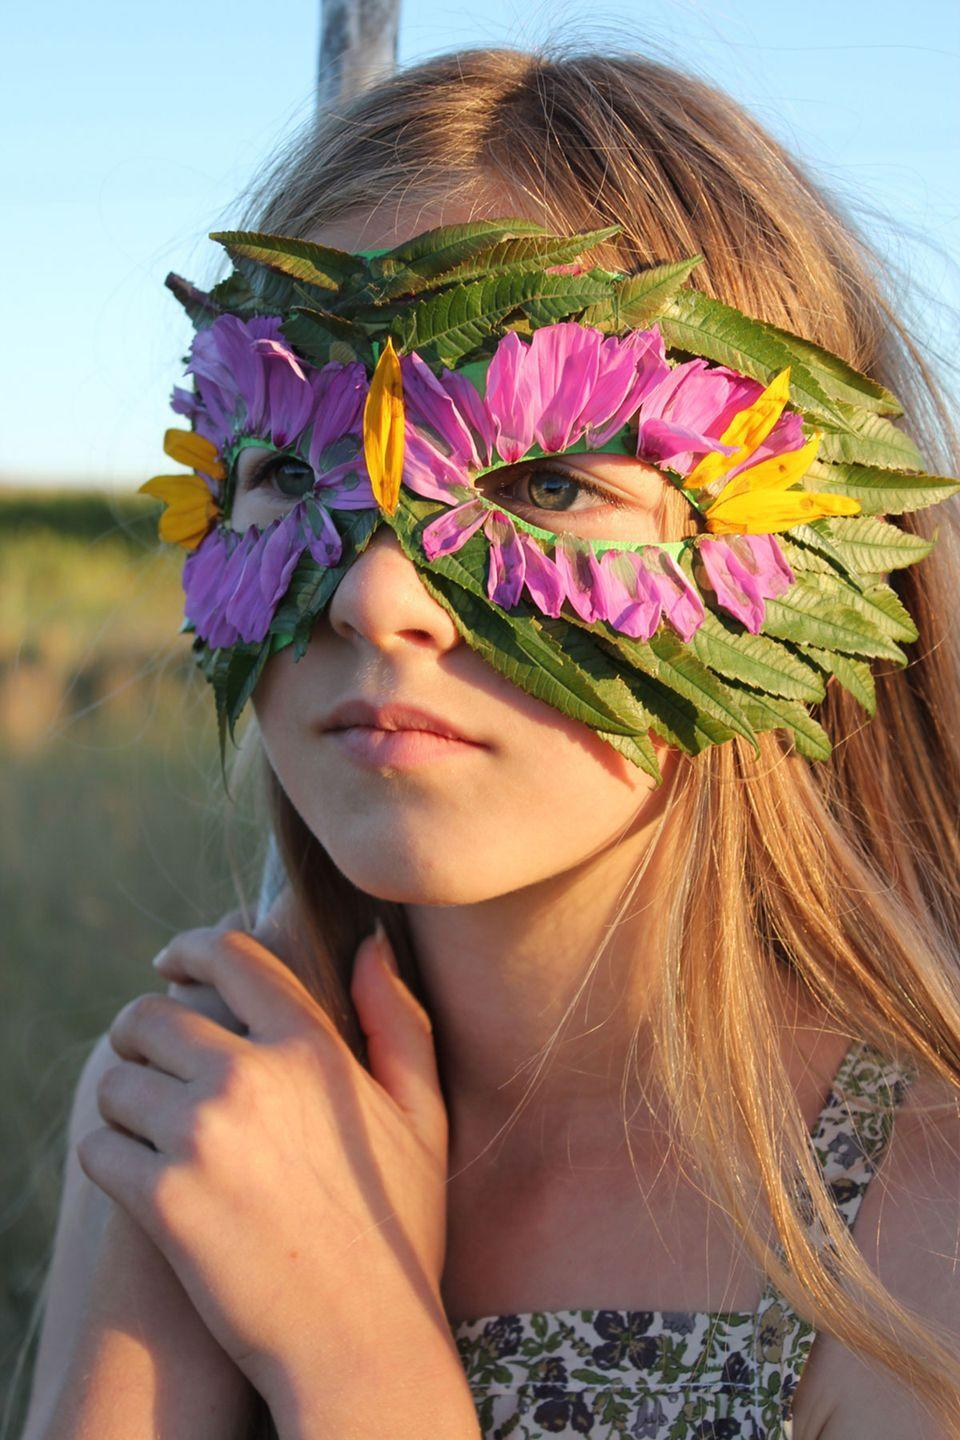 "<p>Make this beautiful mask with your favorite color flower petals. </p><p><strong>Get the tutorial at <a href=""http://mermagblog.com/diy-nature-mask-with-leaves-and-flowers/"" rel=""nofollow noopener"" target=""_blank"" data-ylk=""slk:Mer Mag"" class=""link rapid-noclick-resp"">Mer Mag</a>. </strong></p><p><a class=""link rapid-noclick-resp"" href=""https://www.amazon.com/Darice-35443-54-Single-2-Inch-144-Pack/dp/B0093JNXGW/?tag=syn-yahoo-20&ascsubtag=%5Bartid%7C10050.g.3480%5Bsrc%7Cyahoo-us"" rel=""nofollow noopener"" target=""_blank"" data-ylk=""slk:SHOP LEAVES"">SHOP LEAVES</a> </p>"